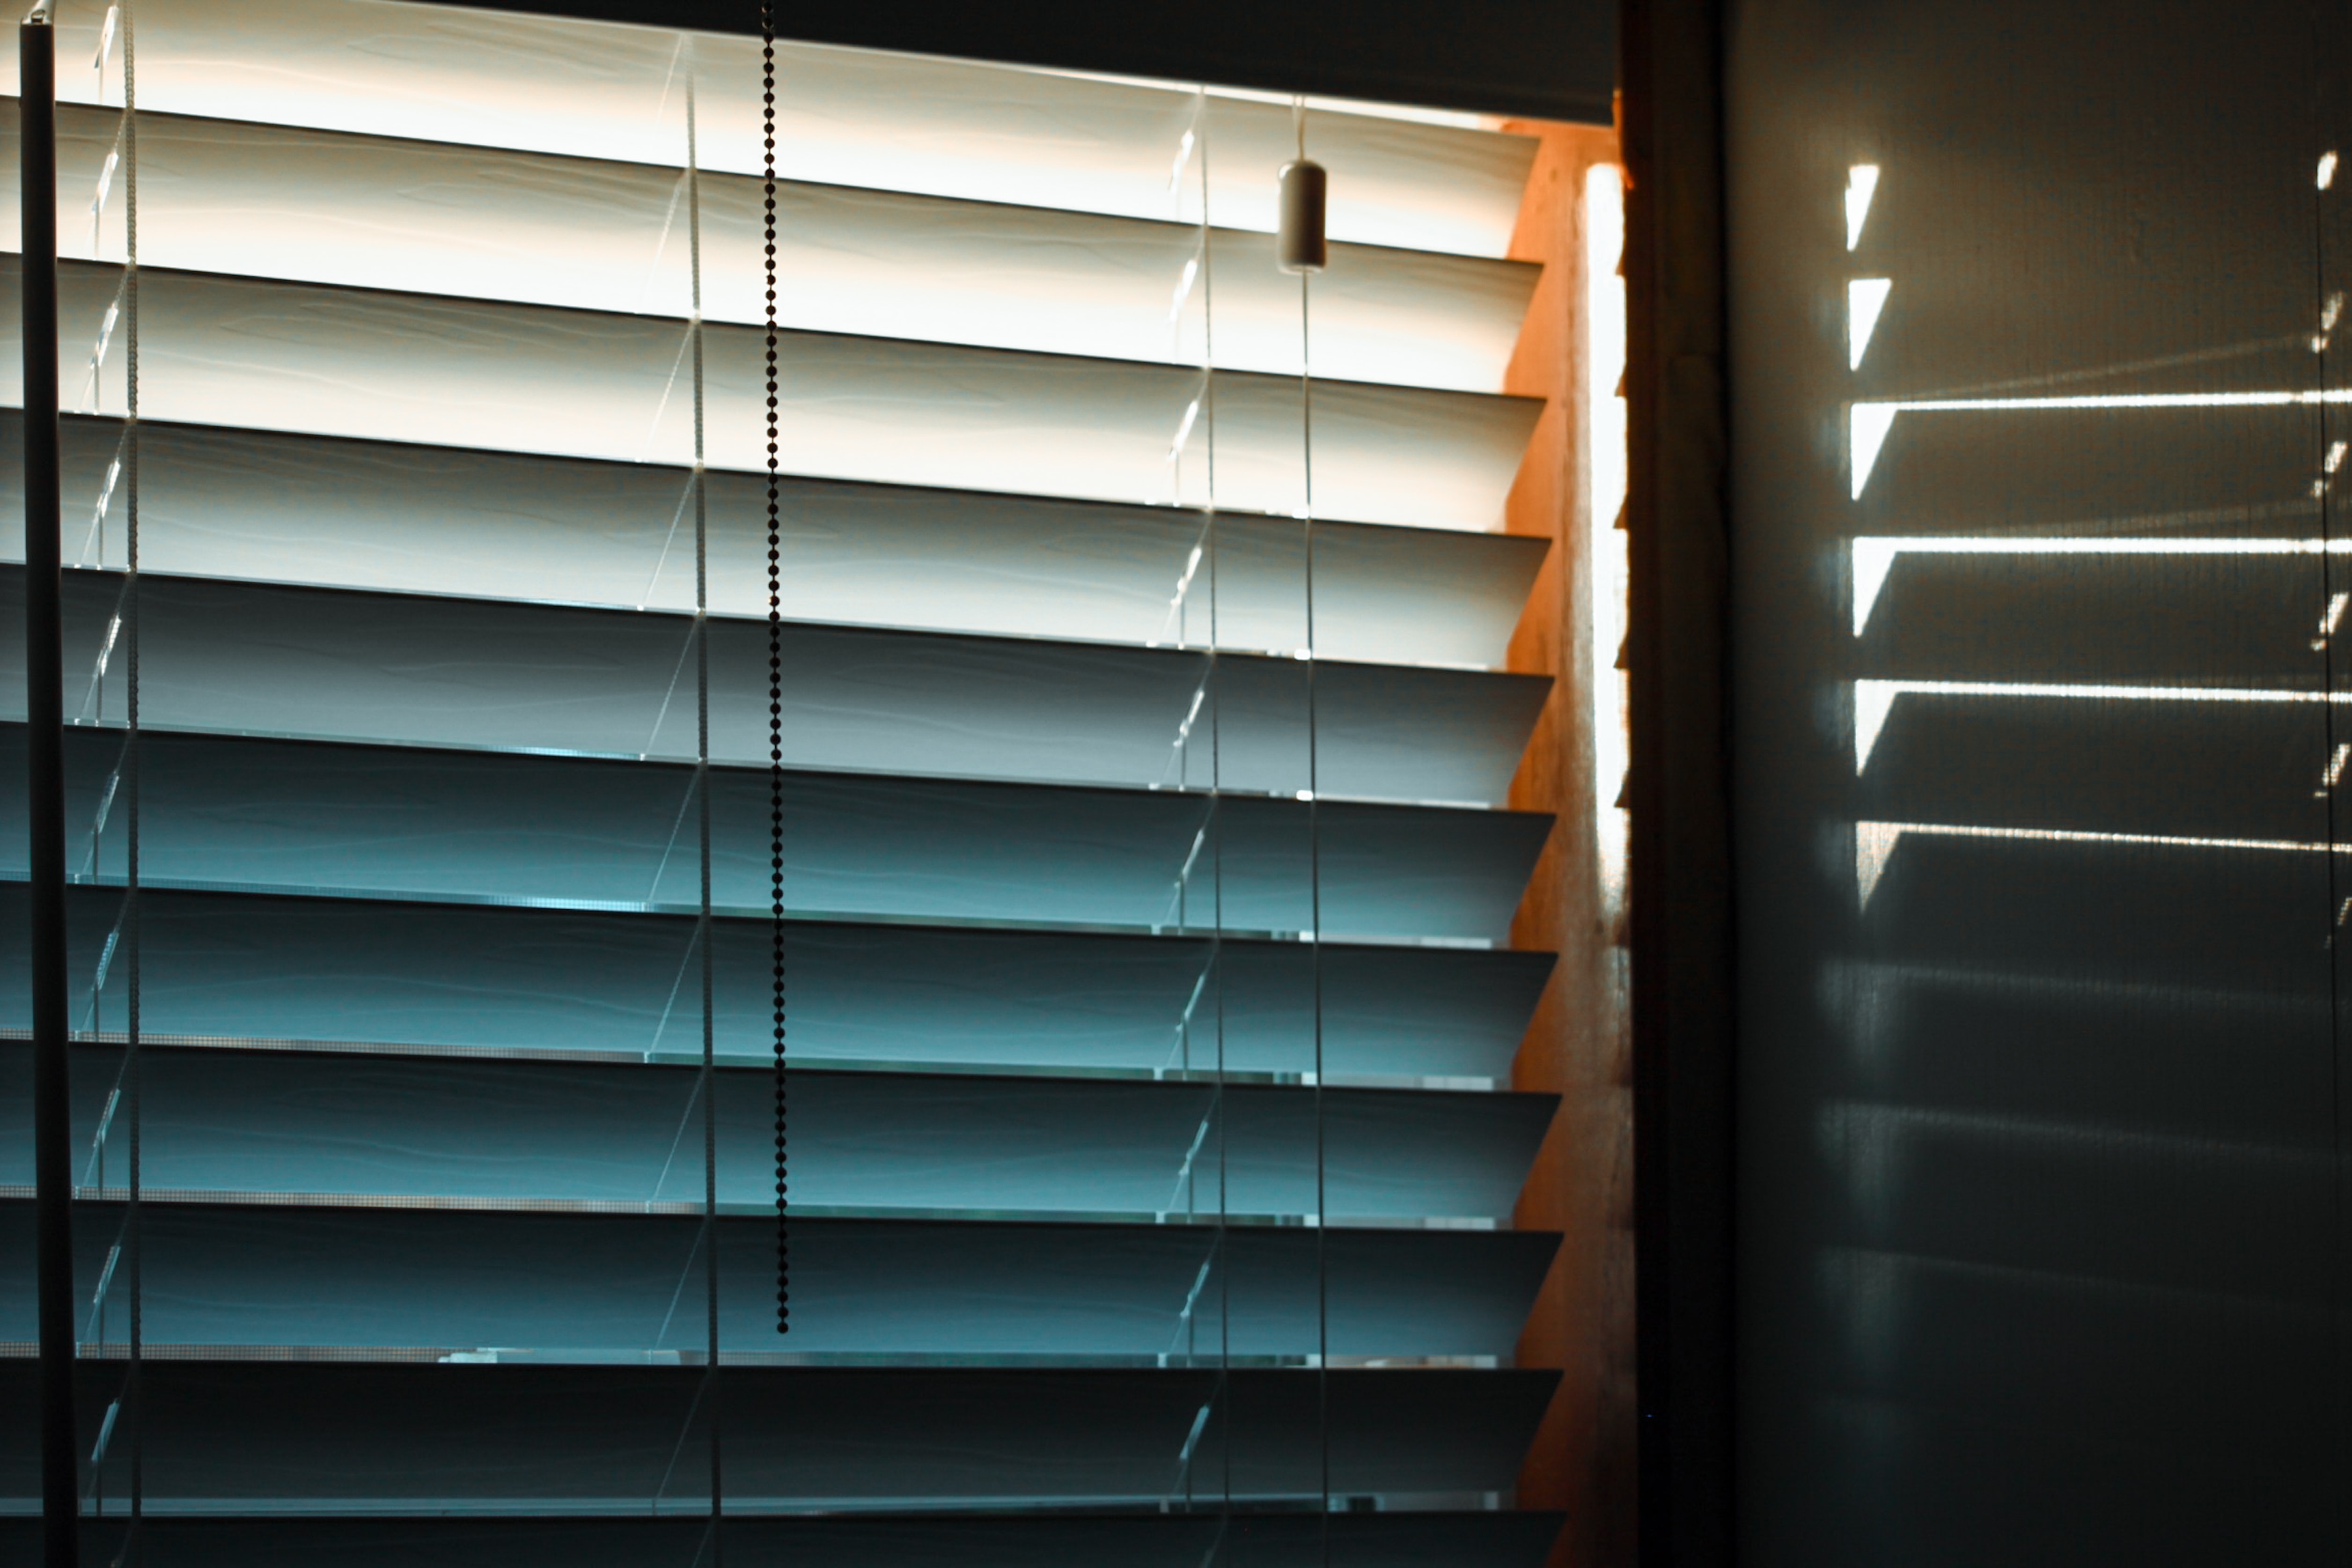 blinds with light gap